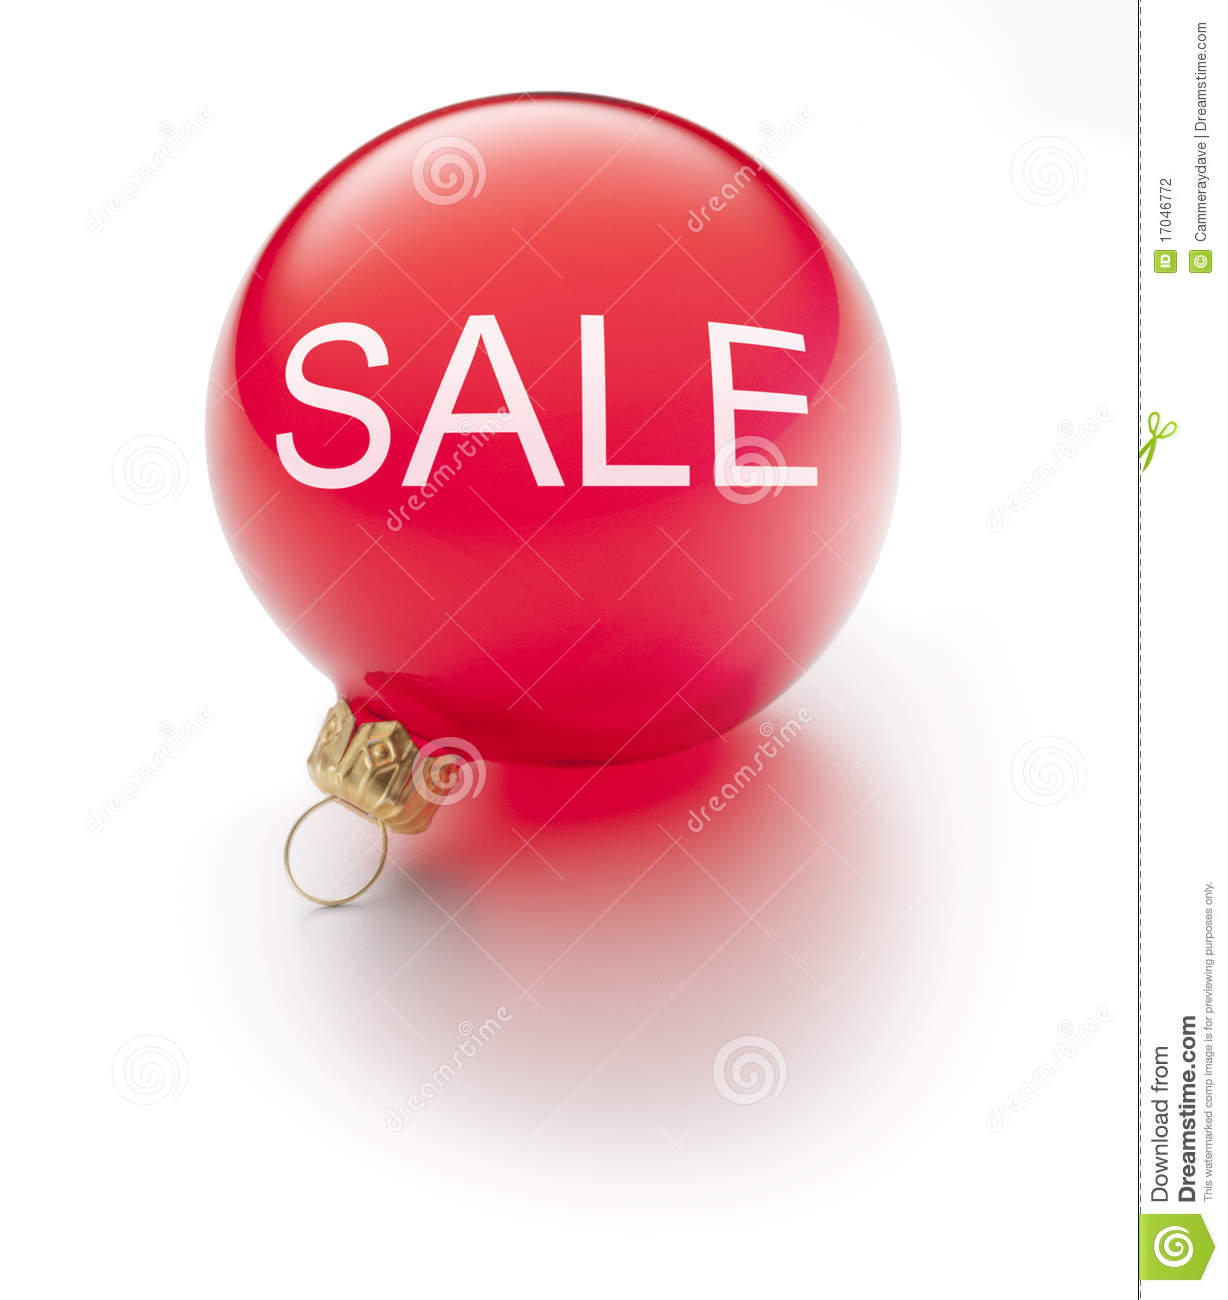 Christmas sale ornament stock photography image 17046772 for Christmas ornaments sale